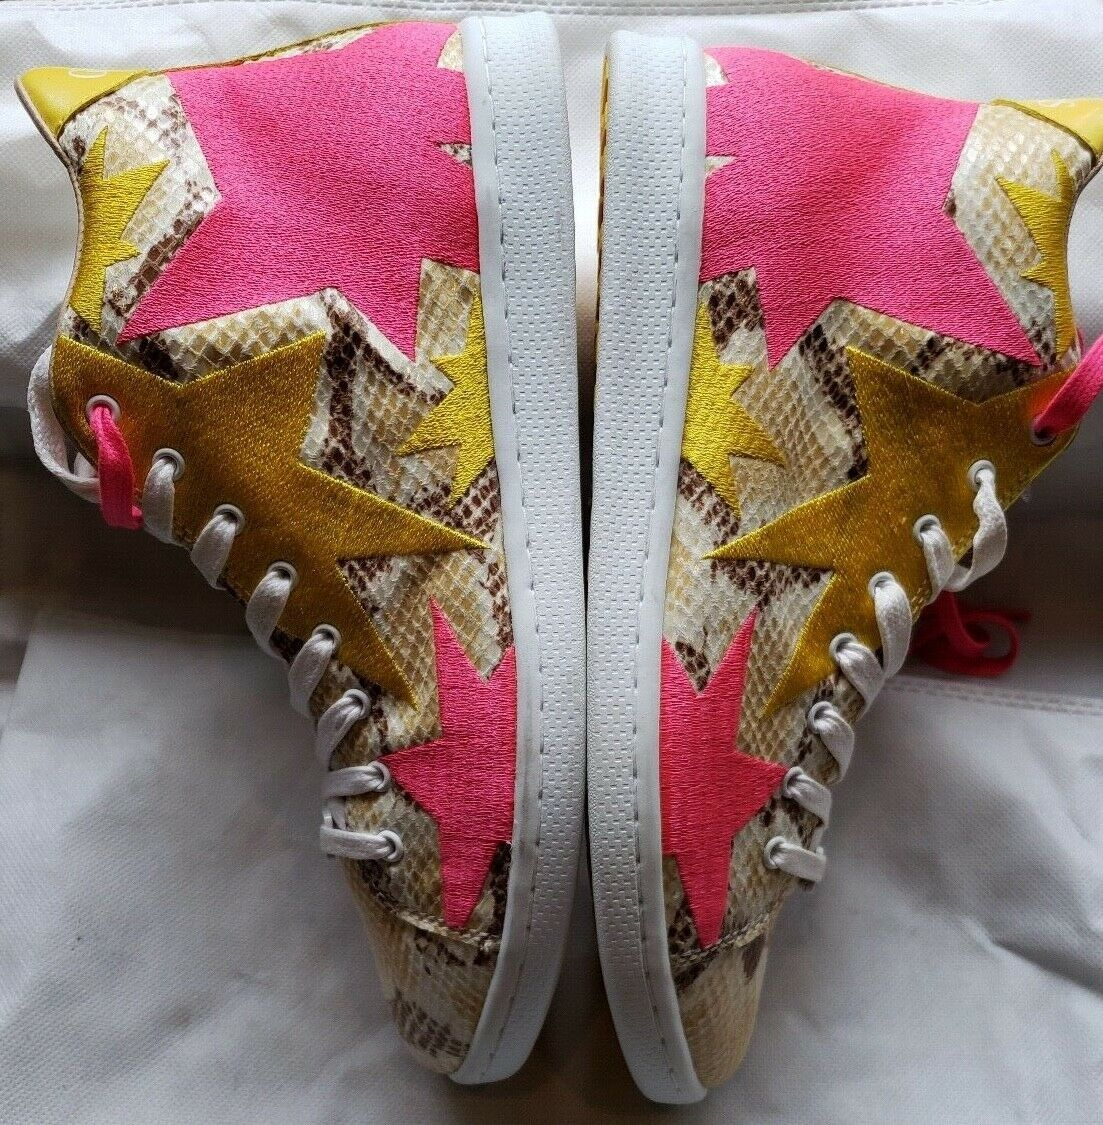 NEW Guess Python Print Yellow and Pink Pink Pink Stars High Top Sneakers Size EU39 US9 d3a74a